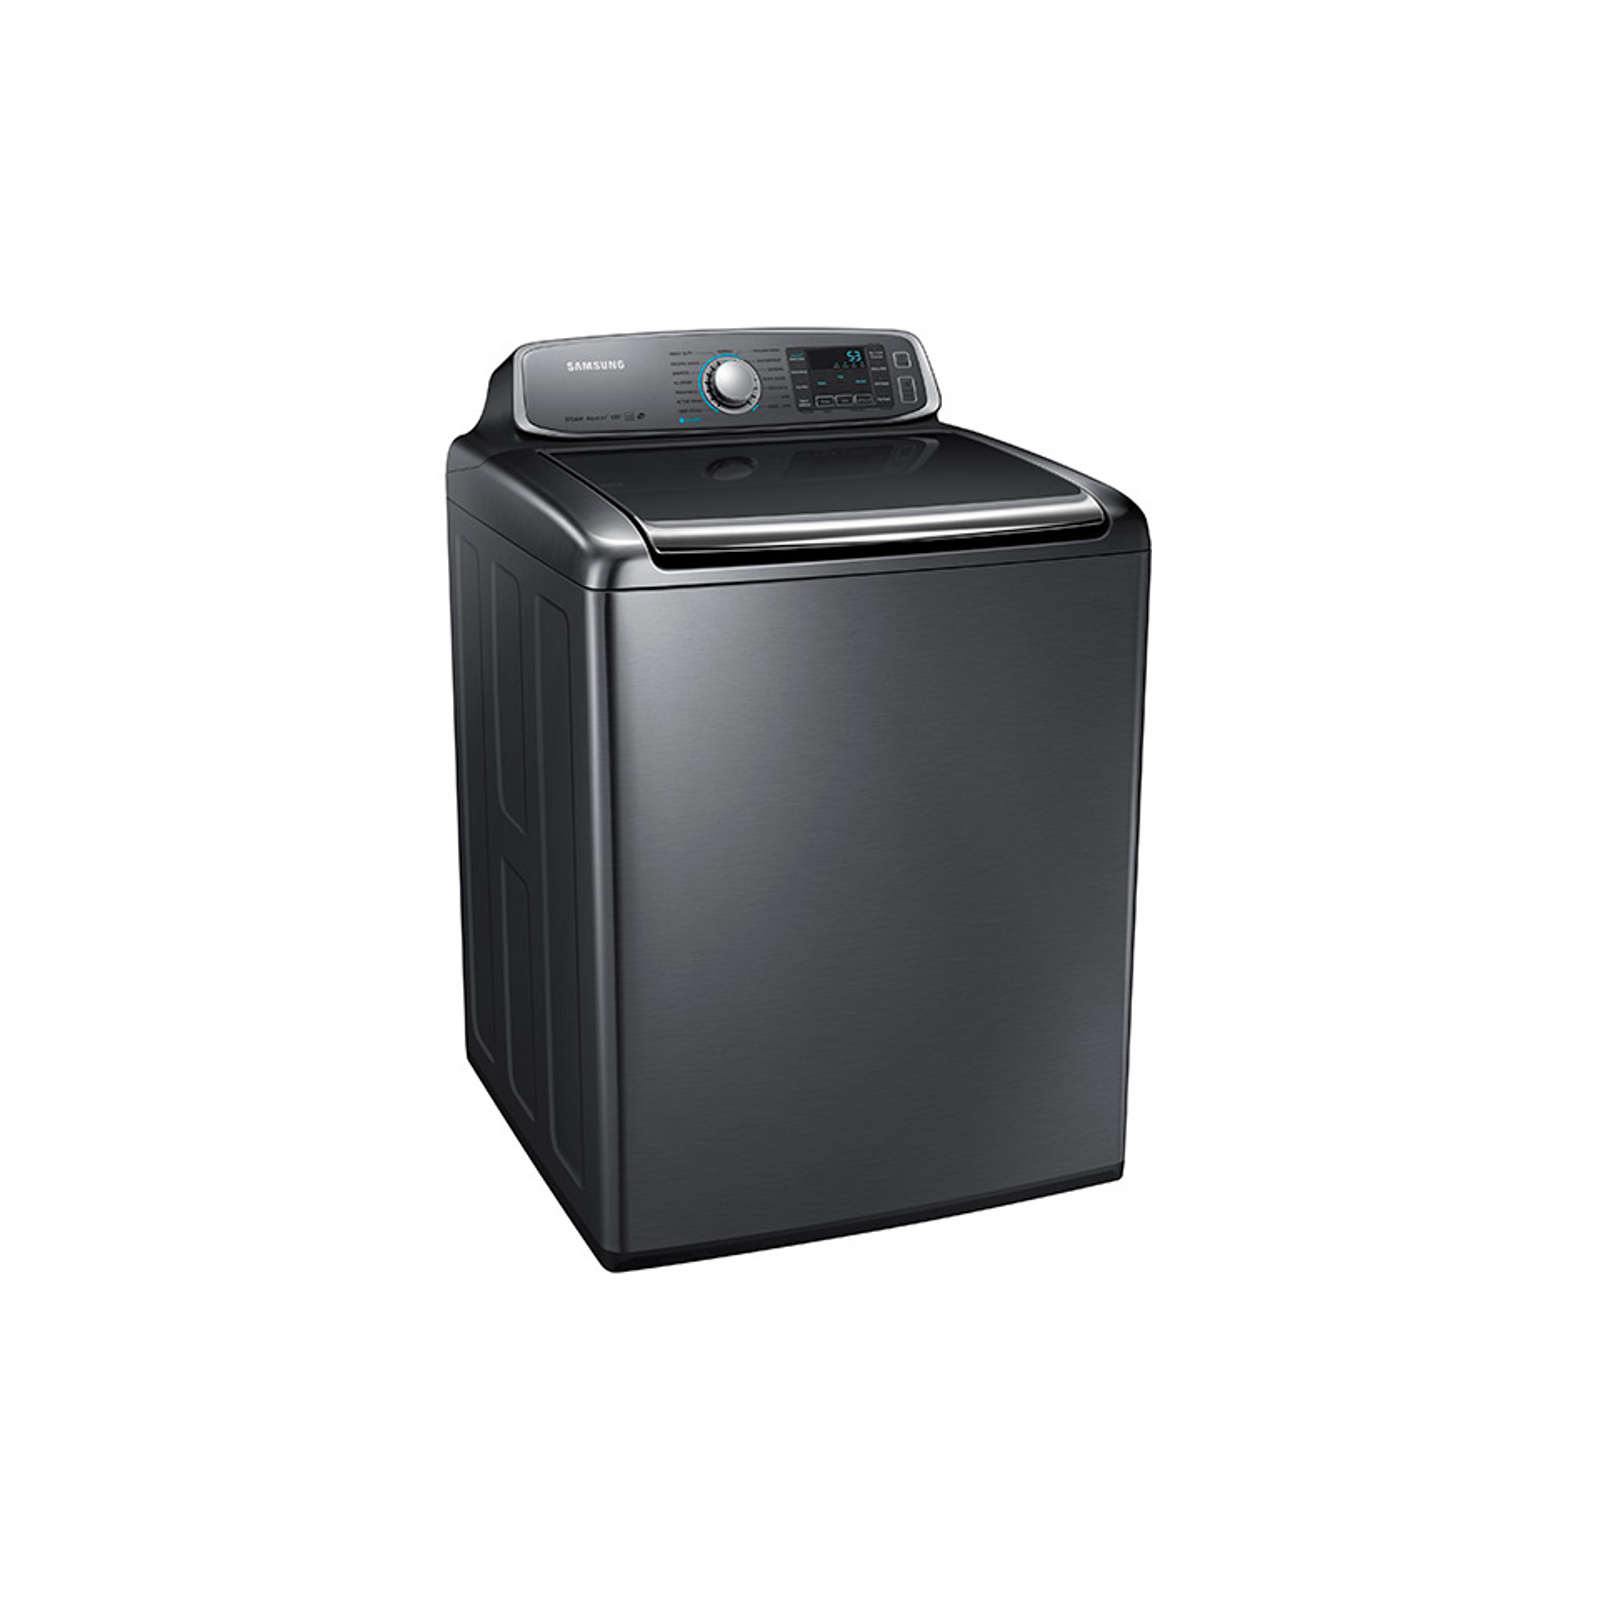 Samsung 5.6 cu. ft. Top-Load Washer - Stainless Platinum